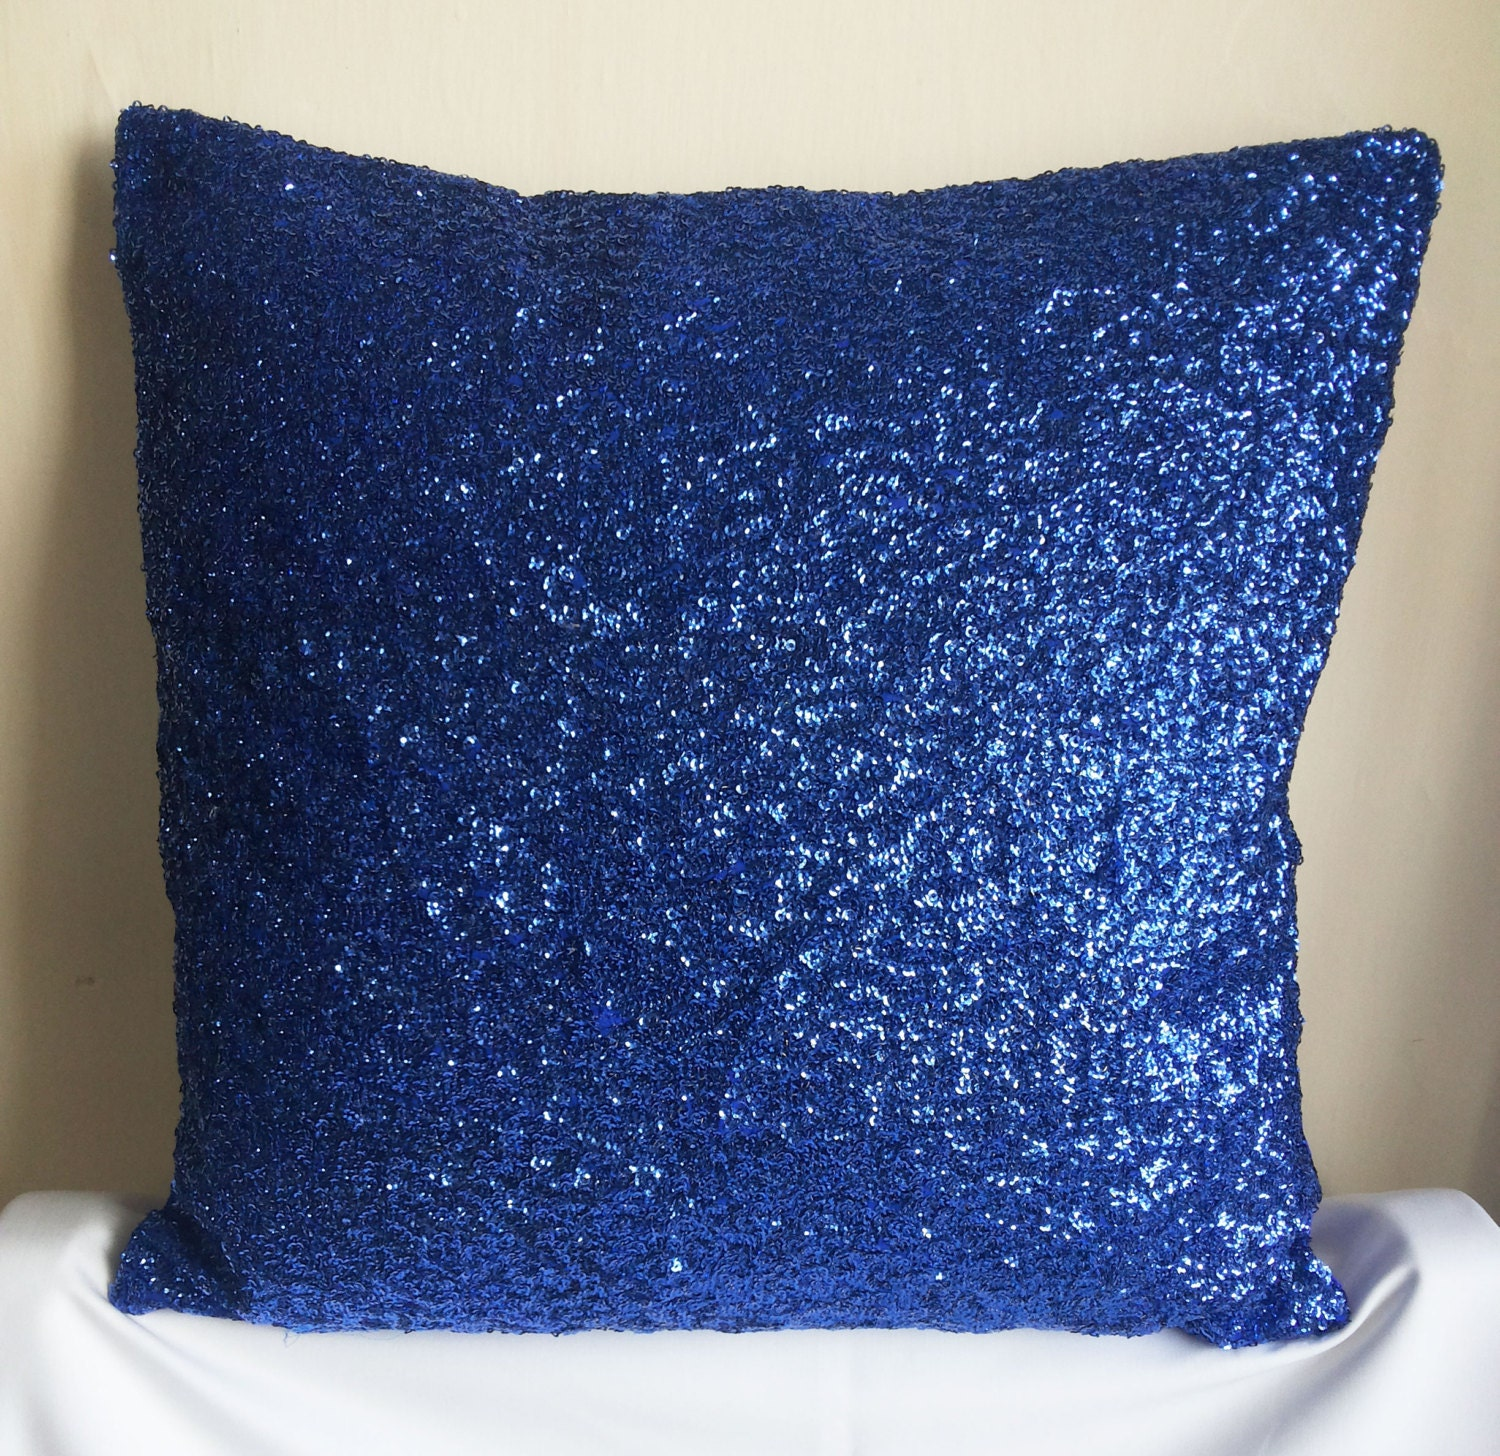 Throw Pillows Royal Blue : SALE Royal Blue Sequins Decorative Throw Pillow Cover 16x16